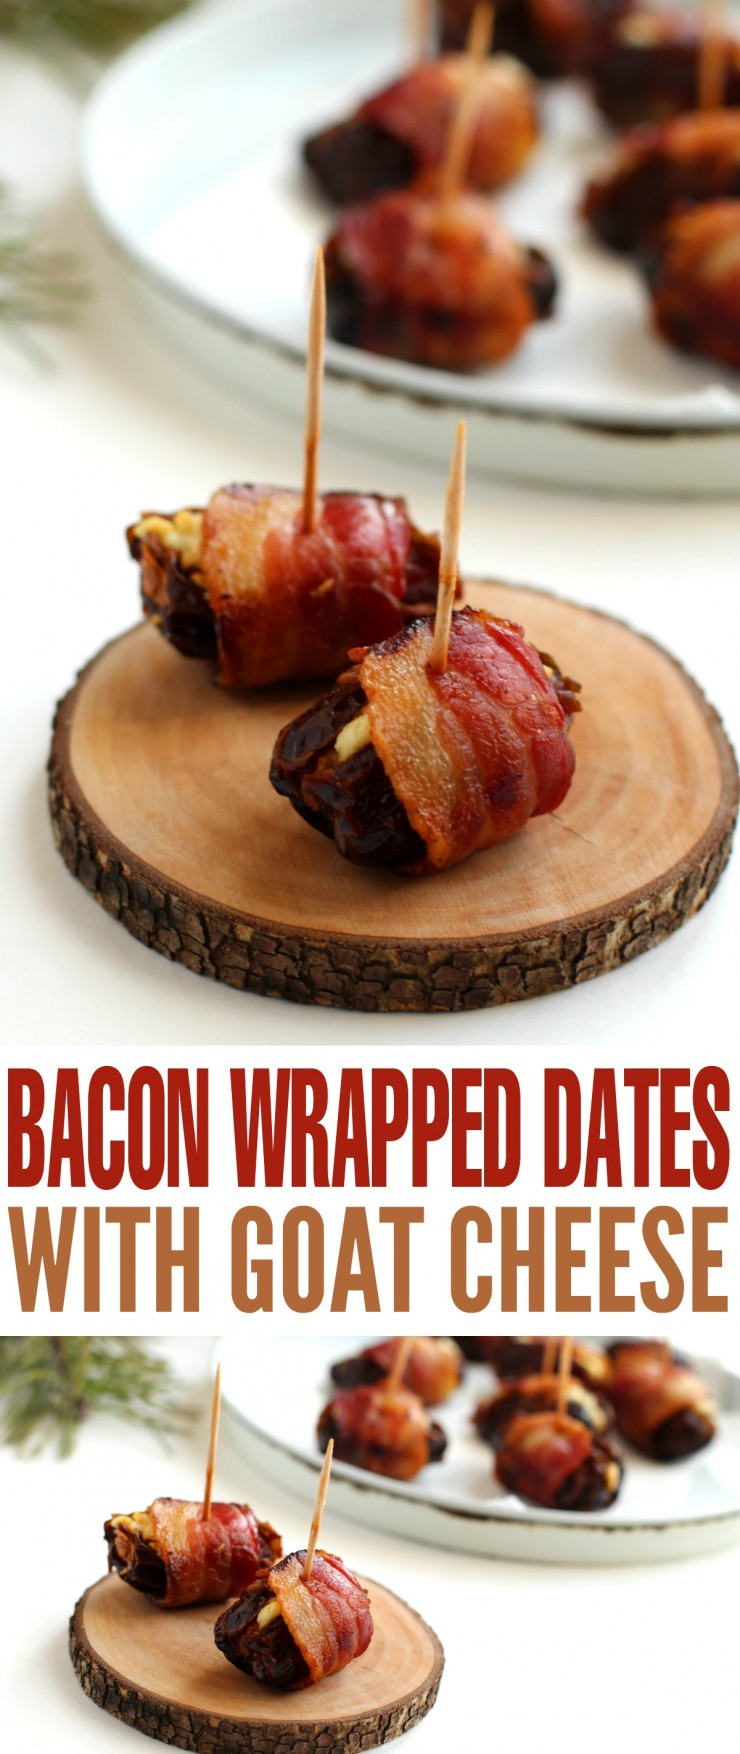 These Bacon Wrapped Dates with Goat Cheese are a perfect holiday appetizer. This is one of those party foods that will have everyone asking you for the recipe!